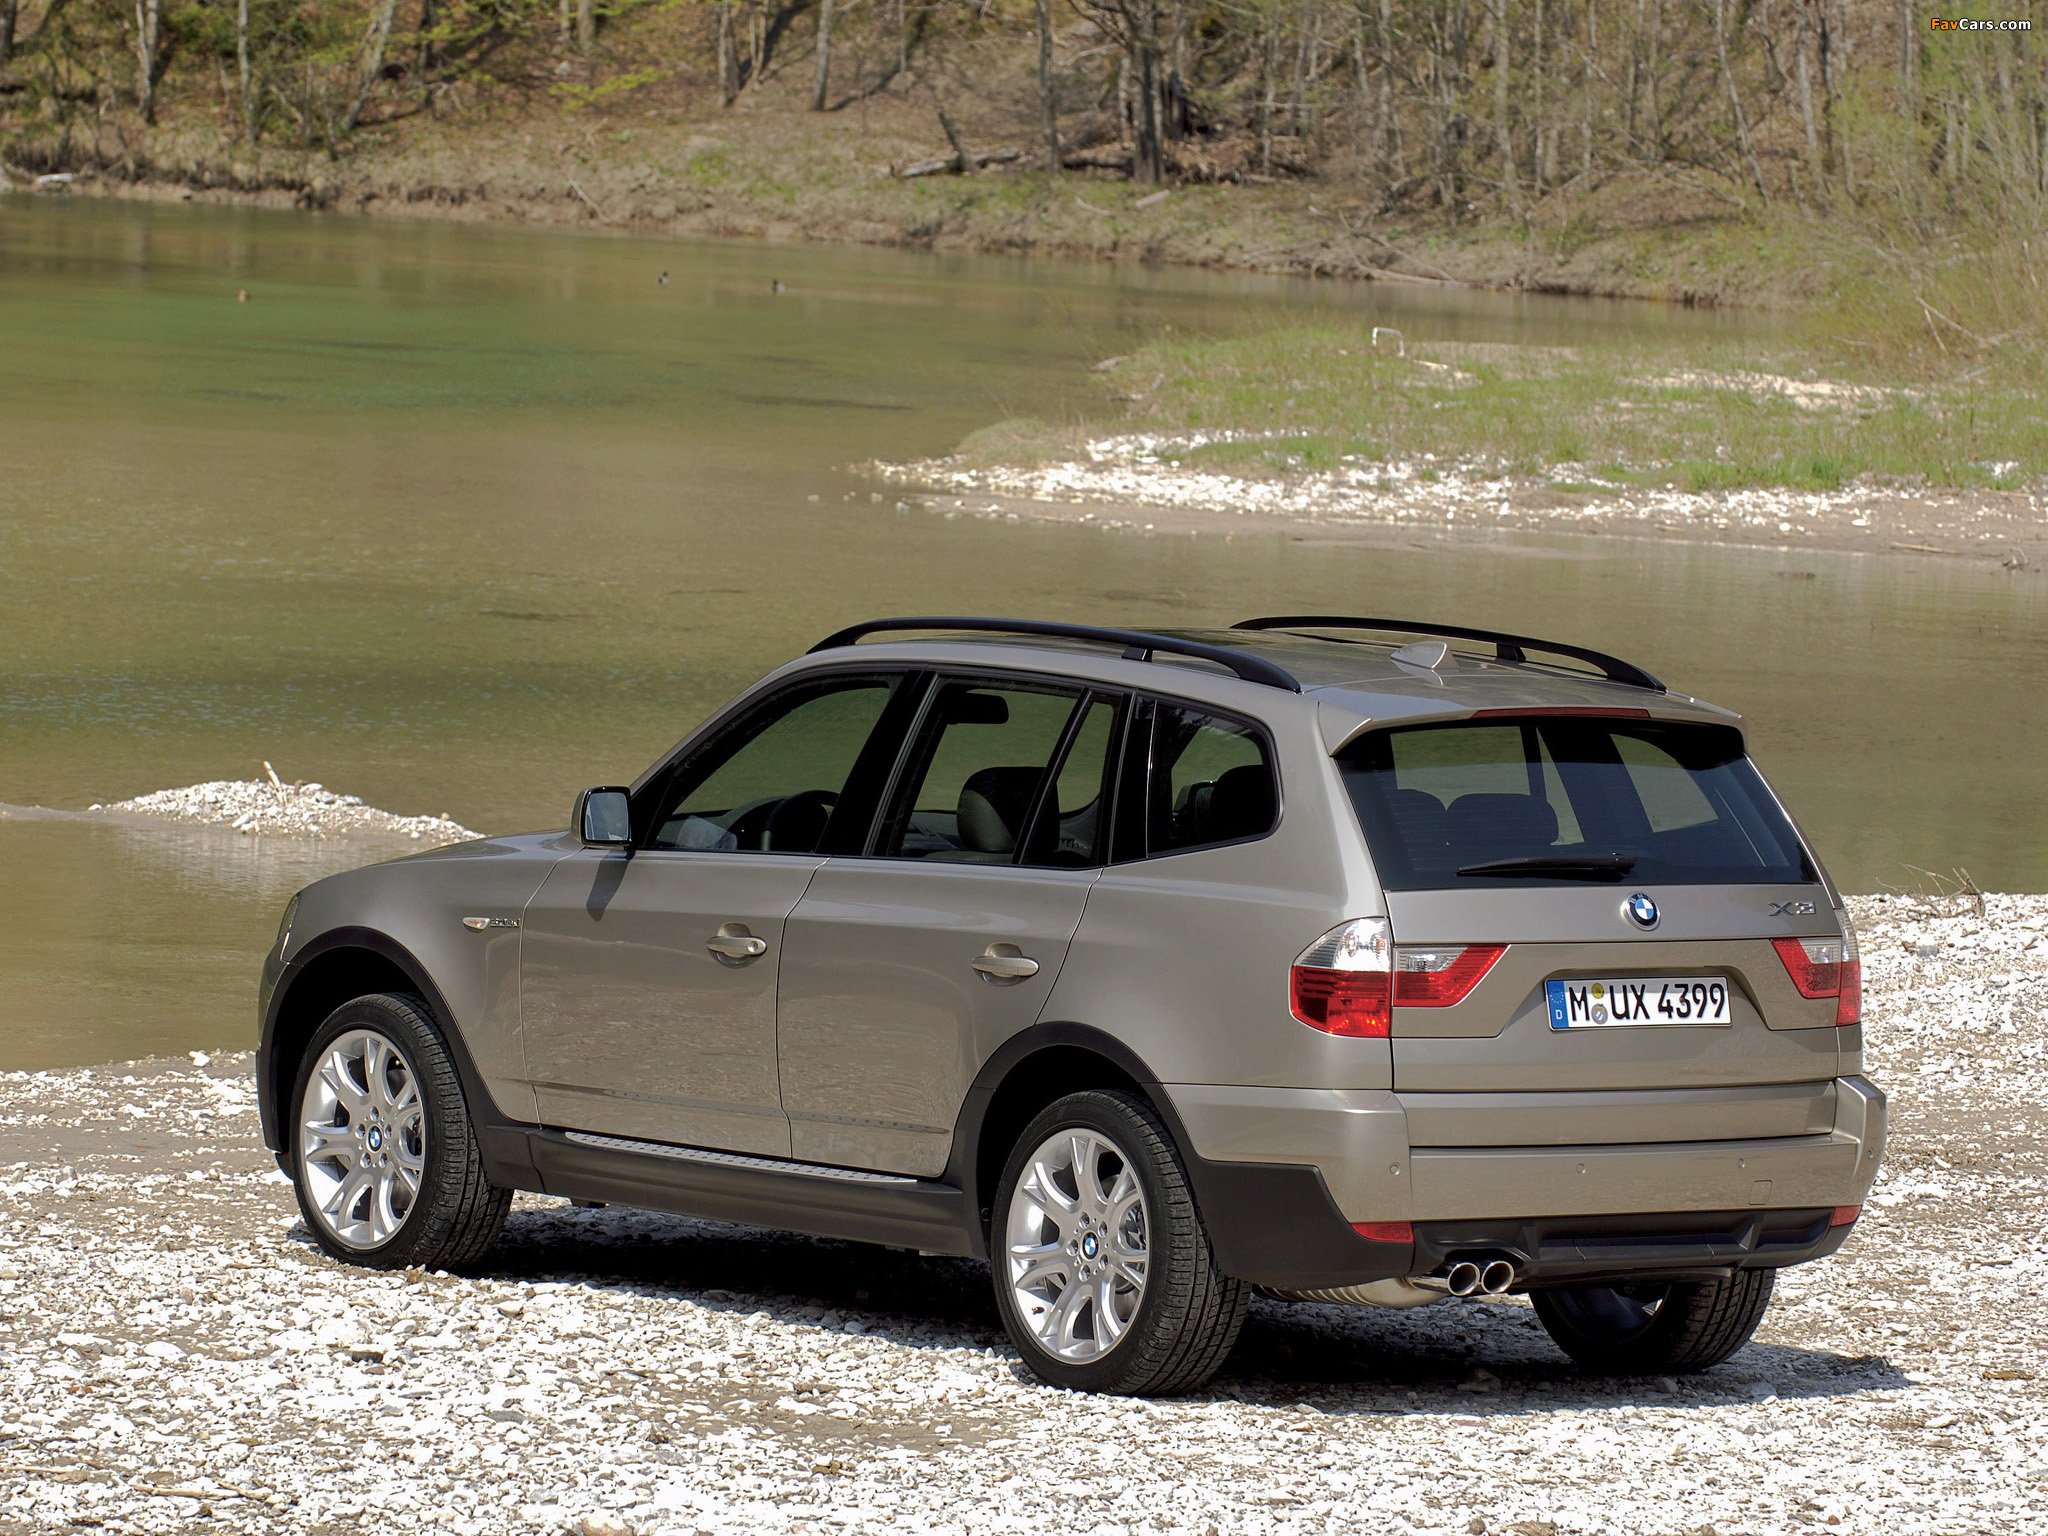 wallpapers of bmw x3 e83 2007 10 2048x1536. Black Bedroom Furniture Sets. Home Design Ideas